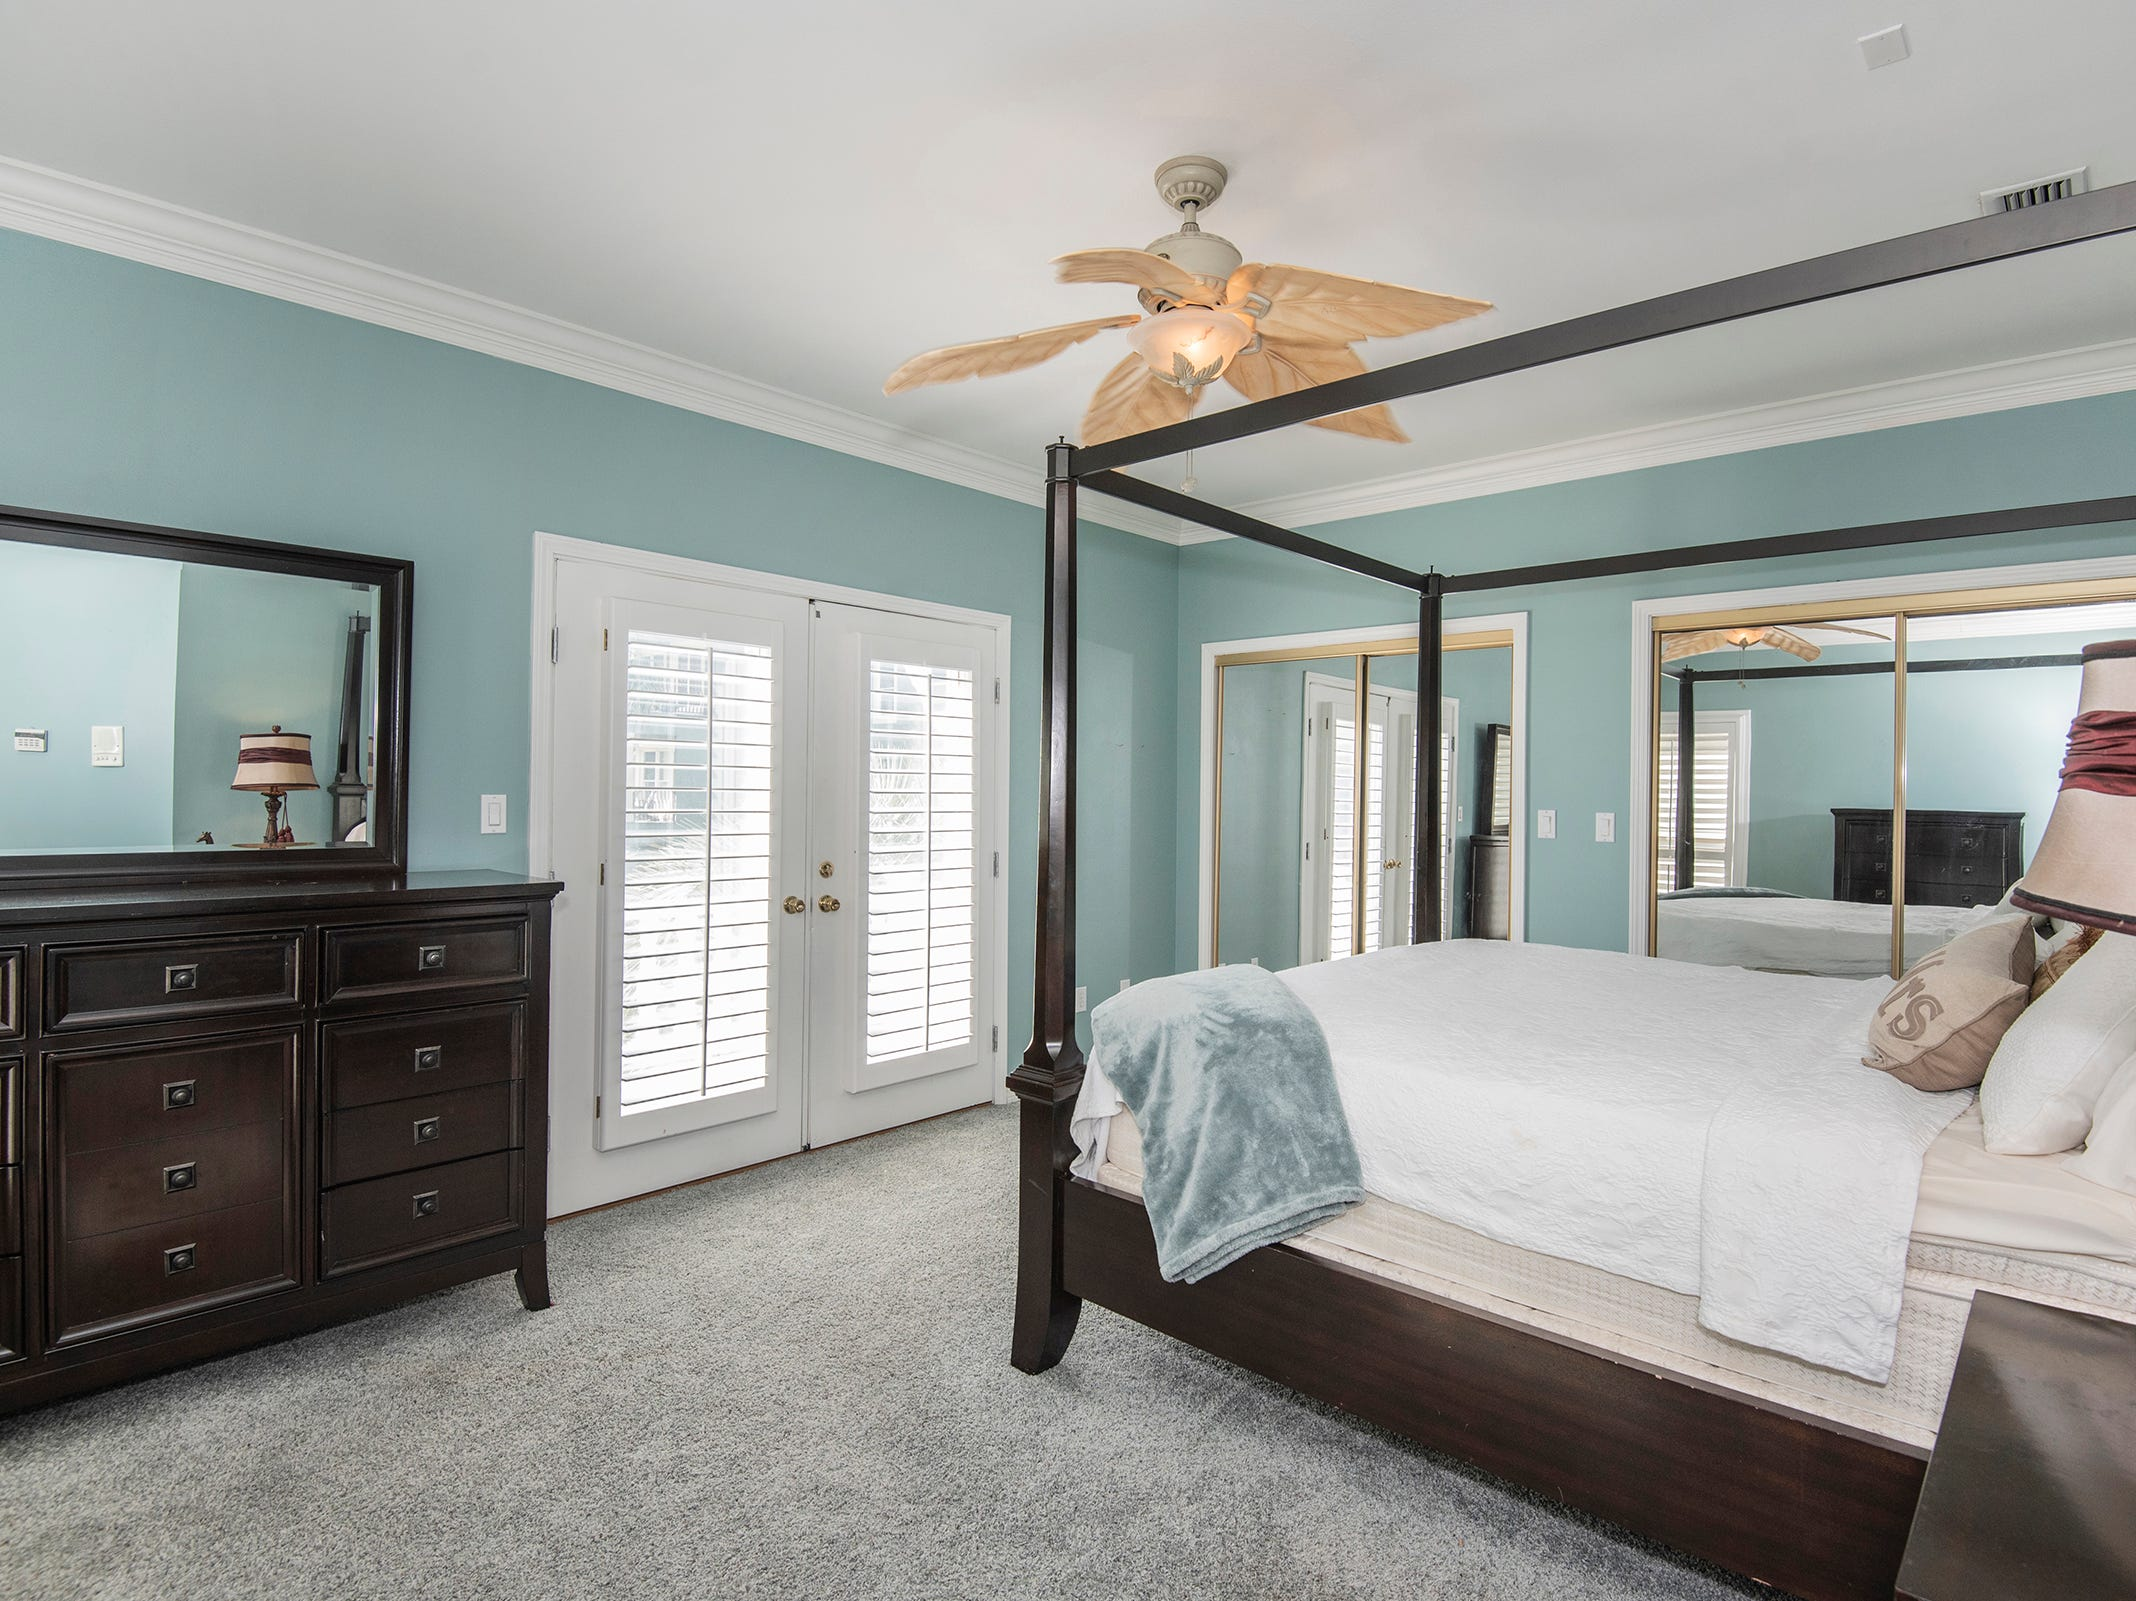 1 La Caribe Dr.The master suite features balcony access.